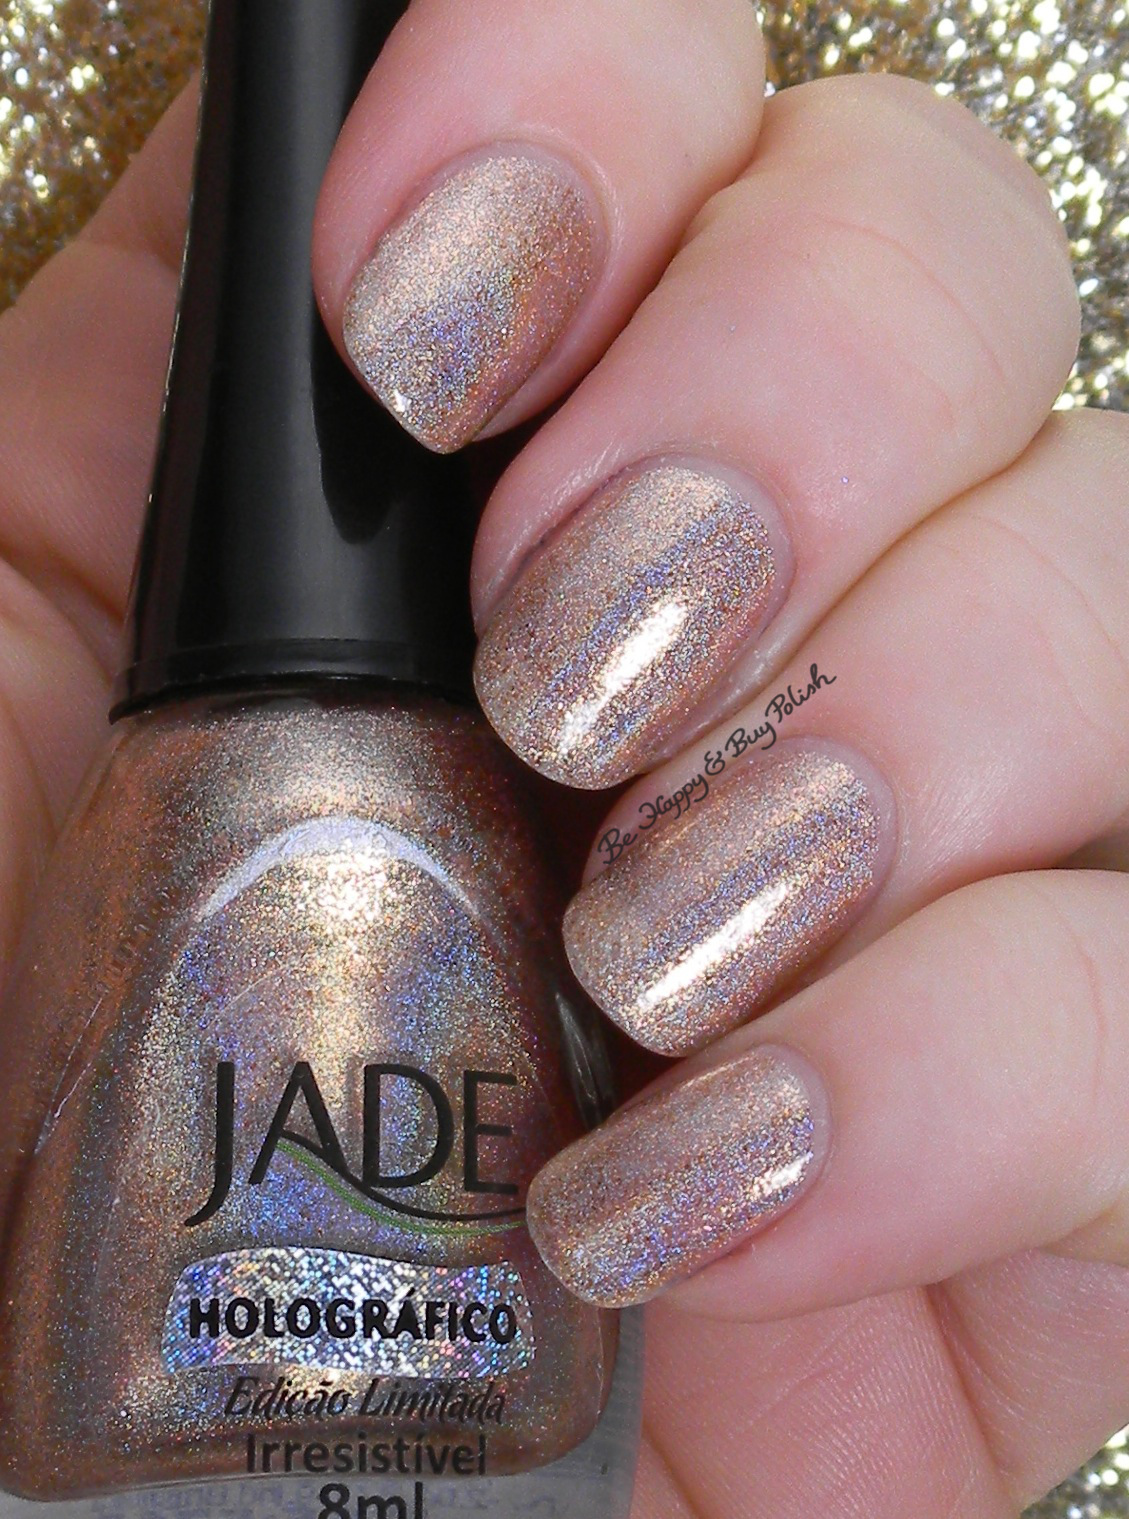 Jade Polish Irresistivel swatches + review | Be Happy and Buy Polish